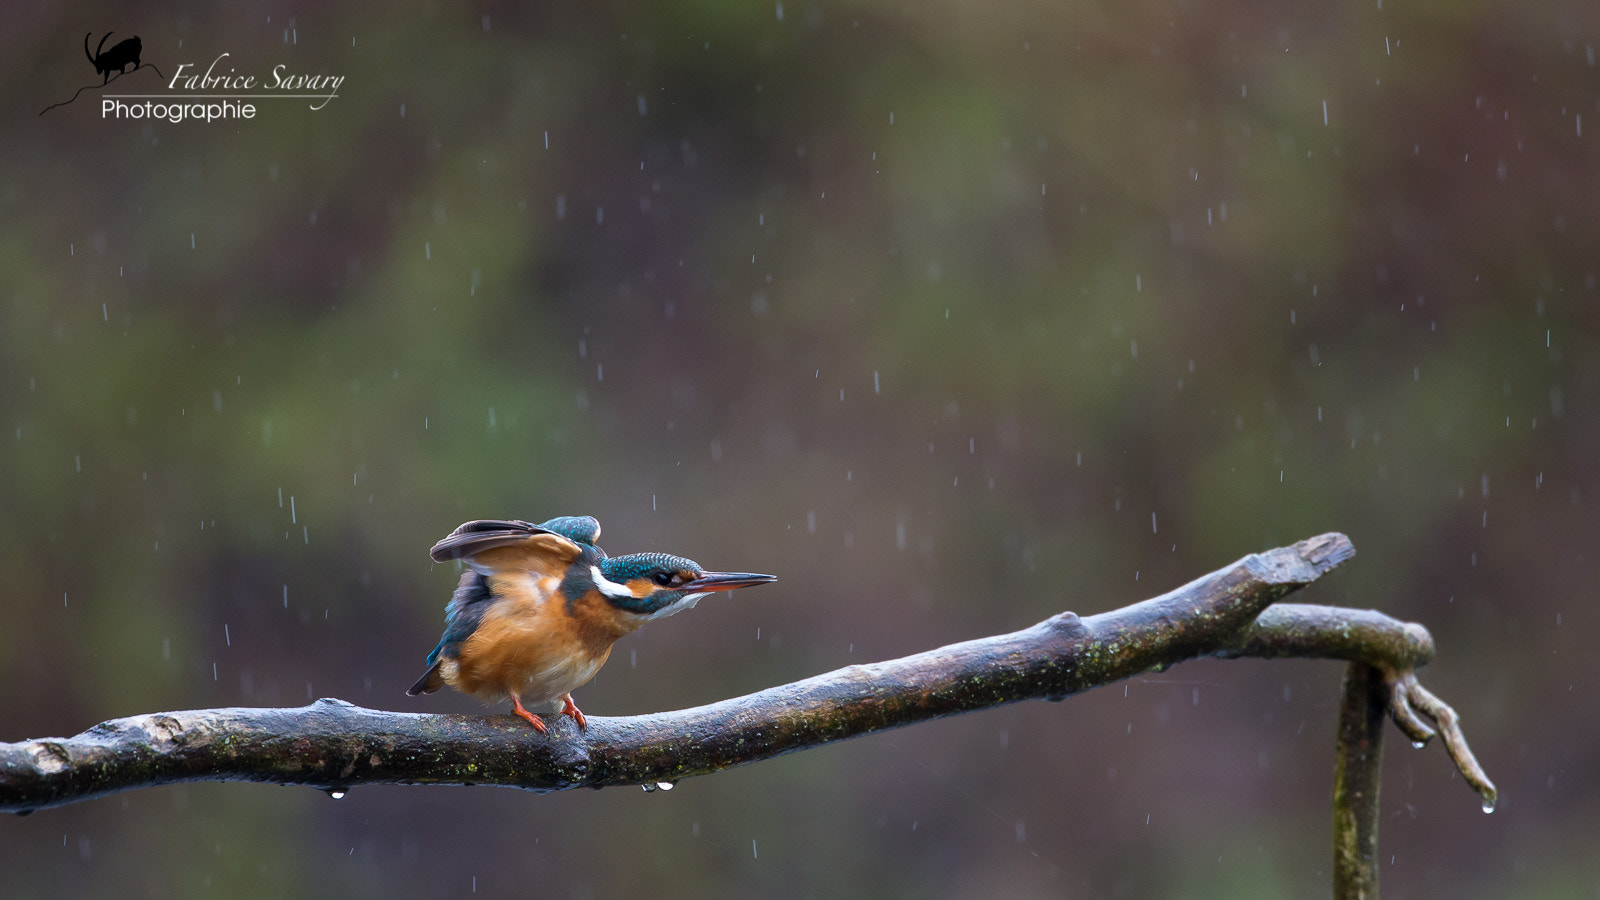 Photograph Martin pêcheur Kingfisher by Fabrice Savary  on 500px